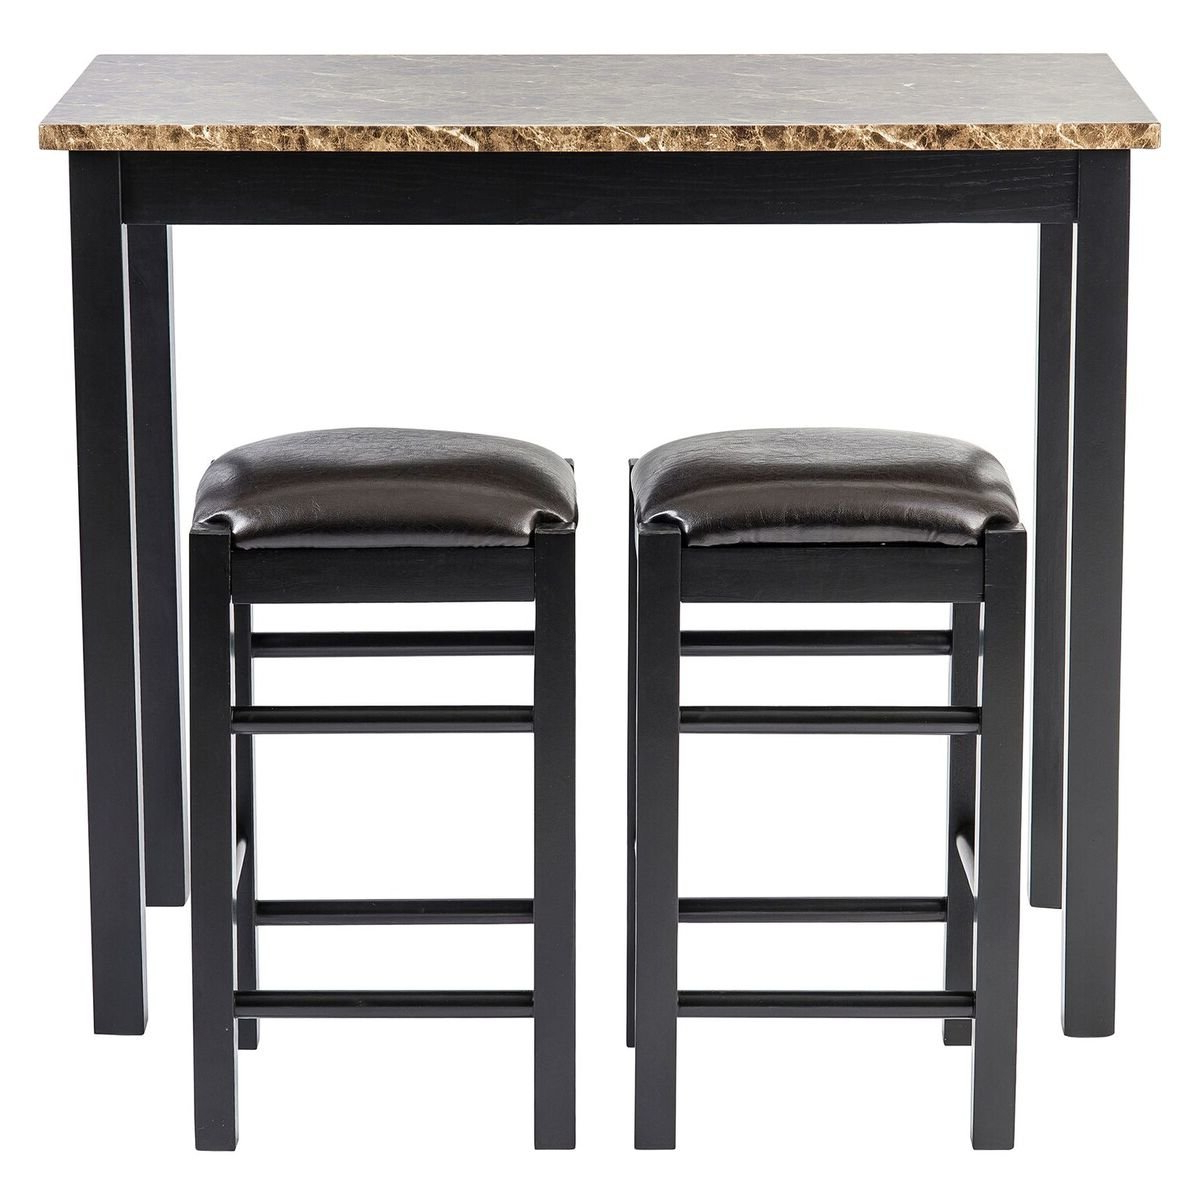 Askern 3 Piece Counter Height Dining Sets (Set Of 3) For Most Up To Date Moorehead 3 Piece Counter Height Dining Set (View 5 of 20)